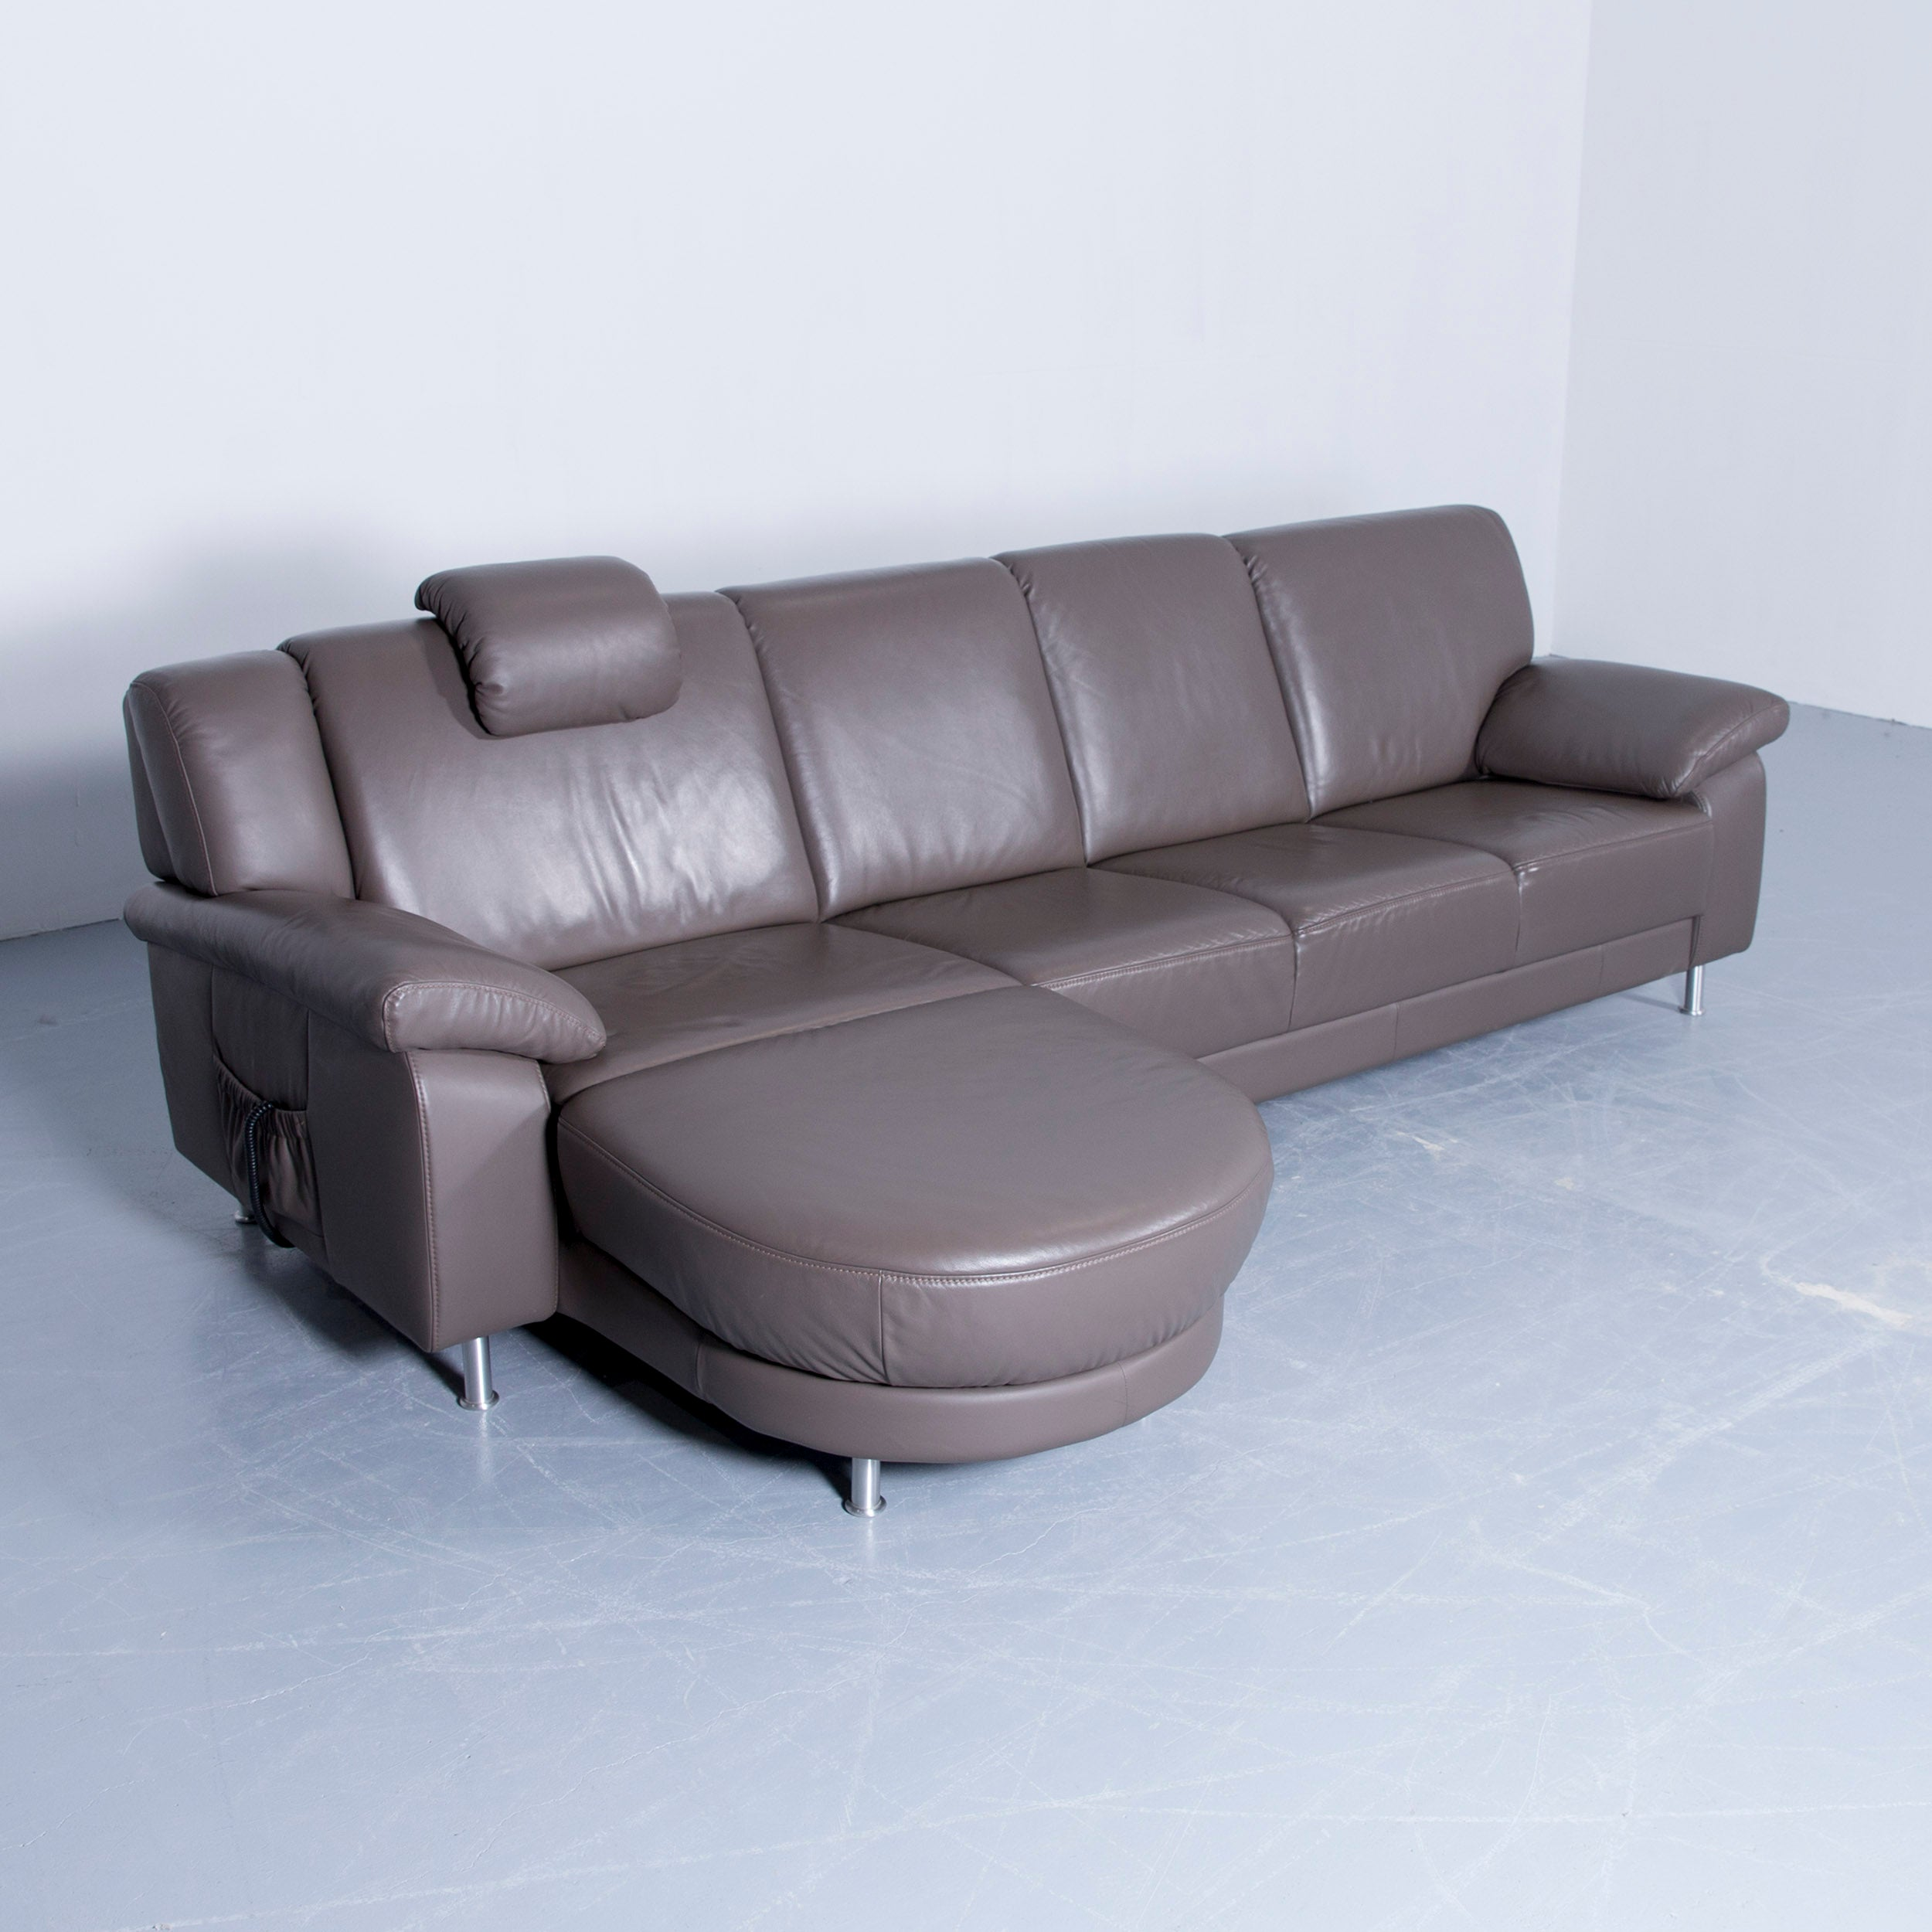 Himolla Planopoly Corner Sofa Leather Brown Electric Recline Function Couch  At 1stdibs